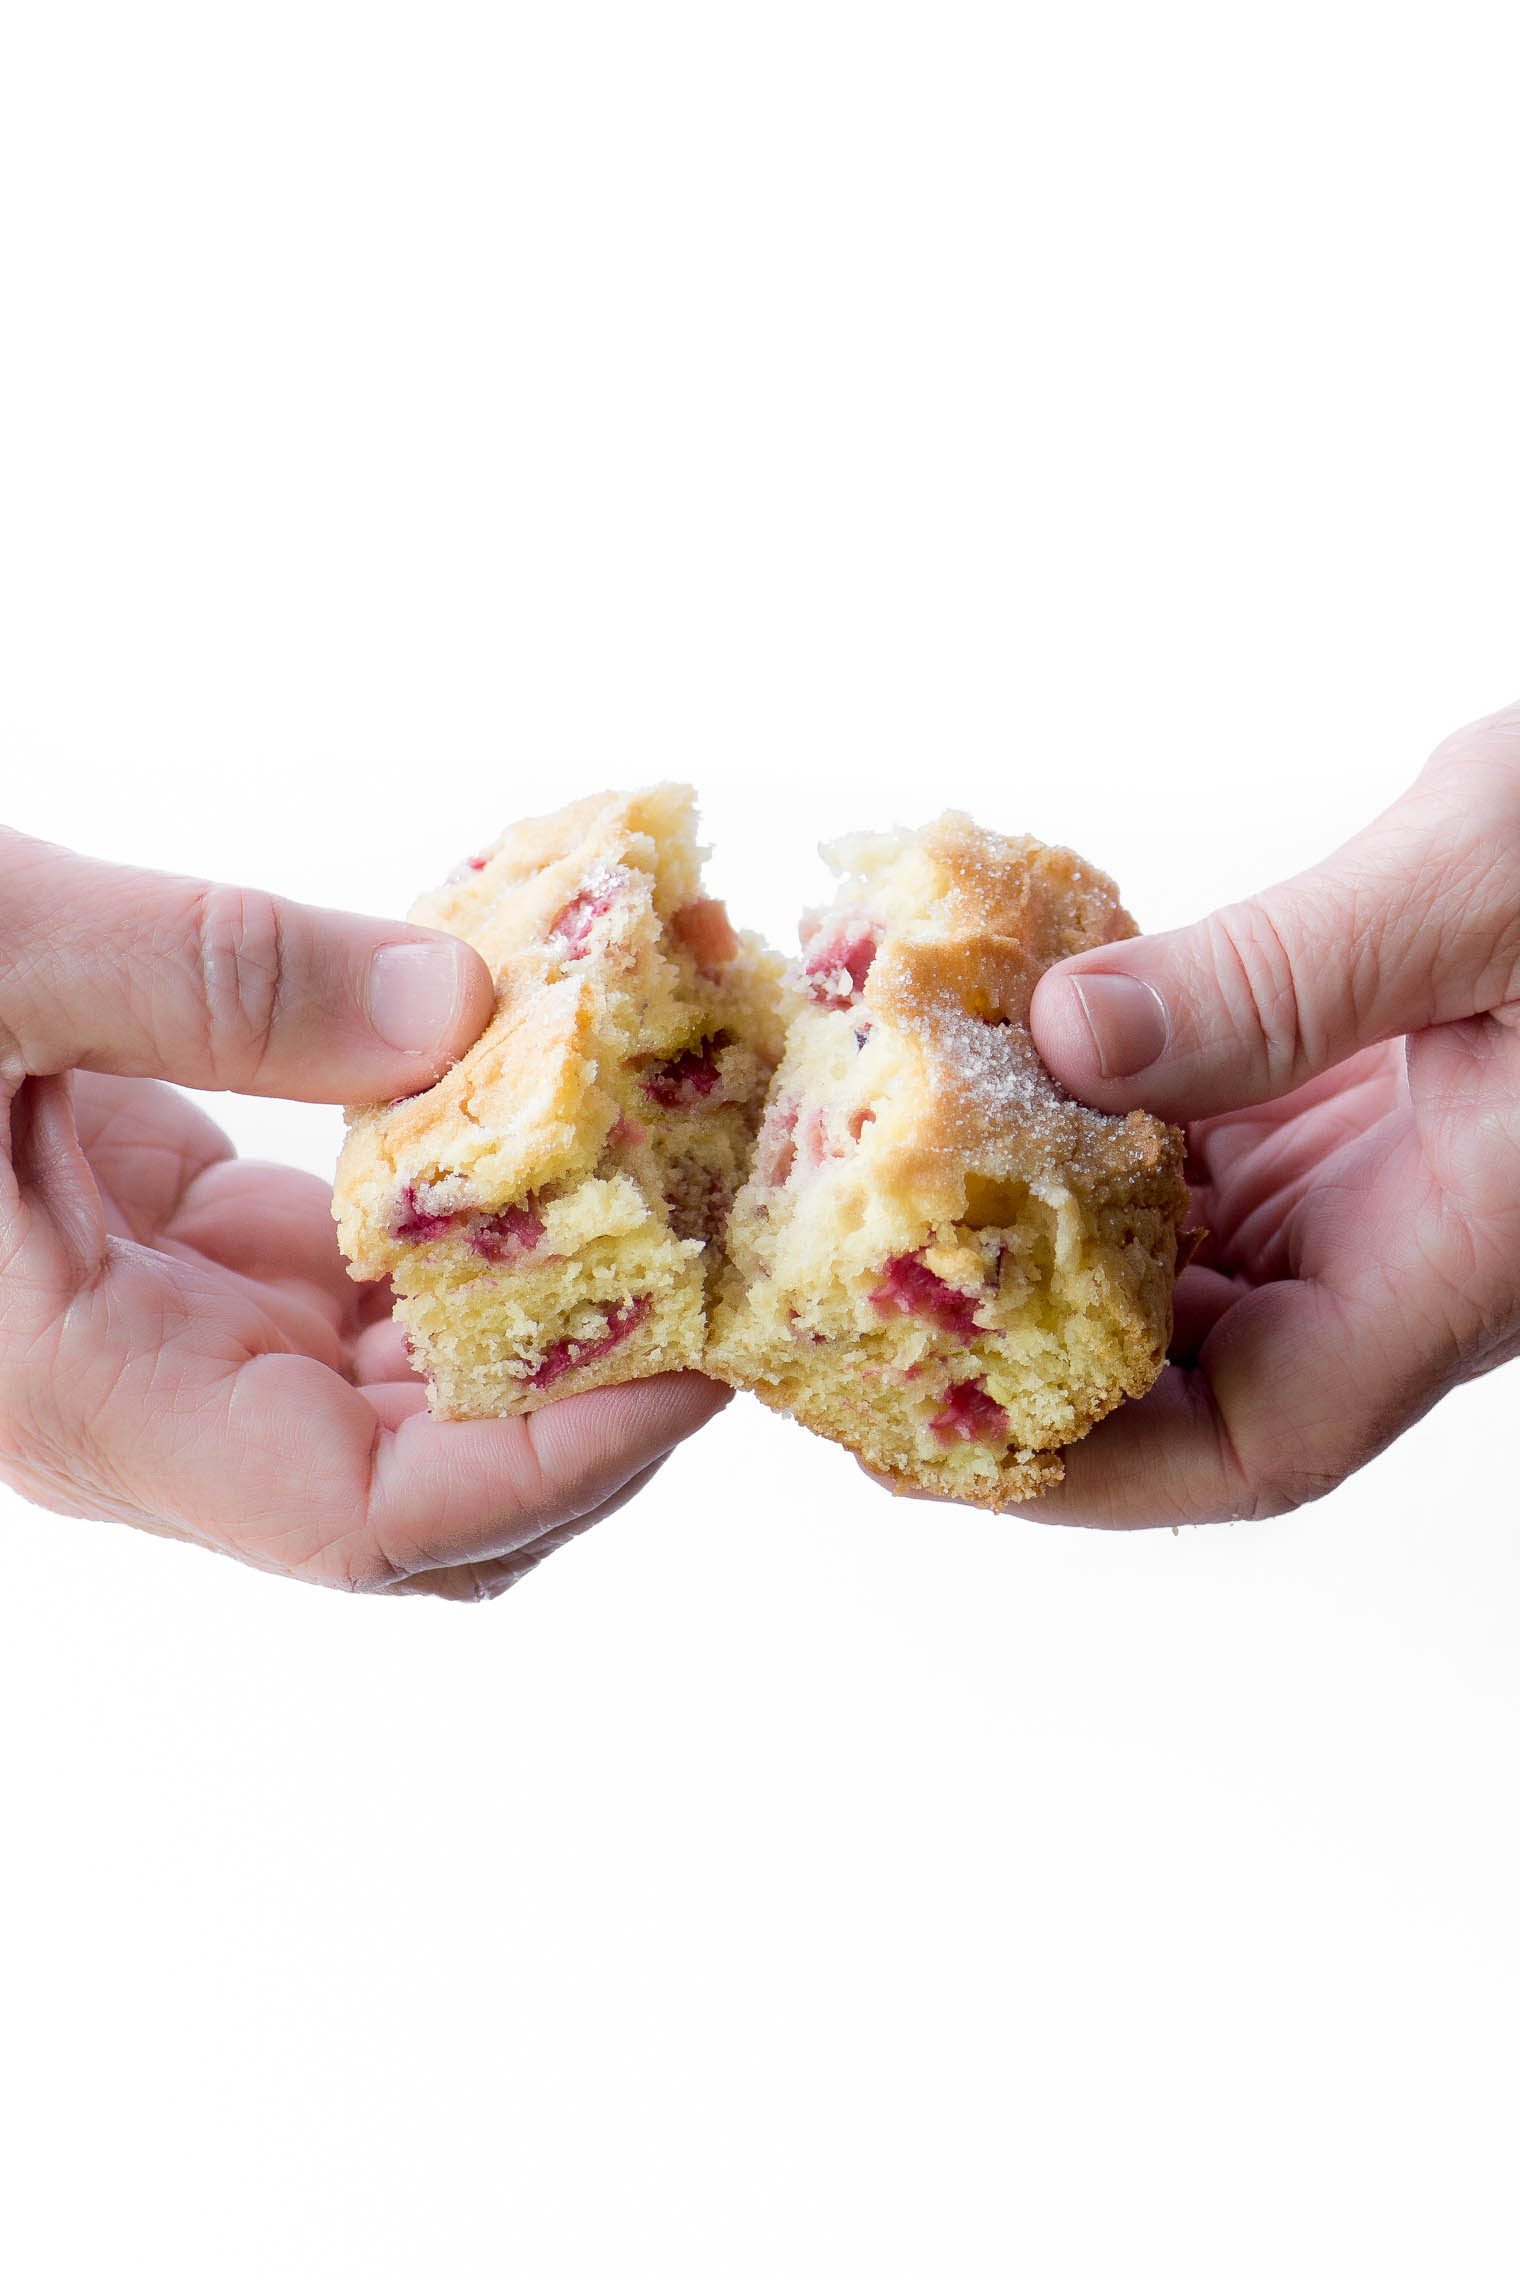 A piece of Rhubarb Breakfast Cake image